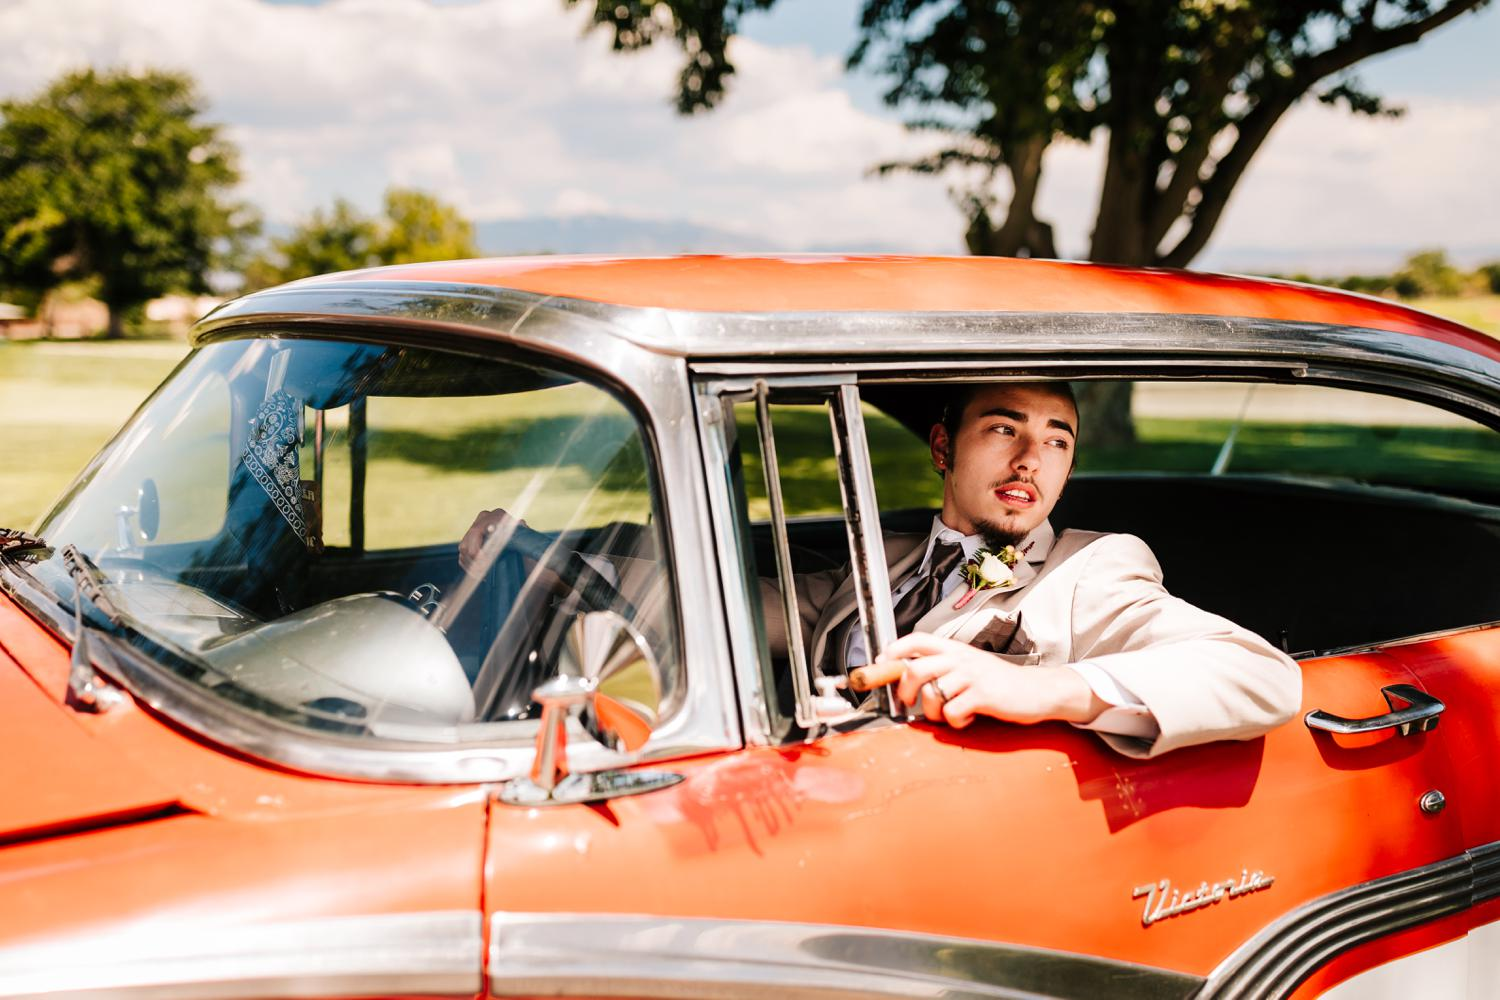 Groom in vintage red car on wedding day in Albuquerque, New Mexico